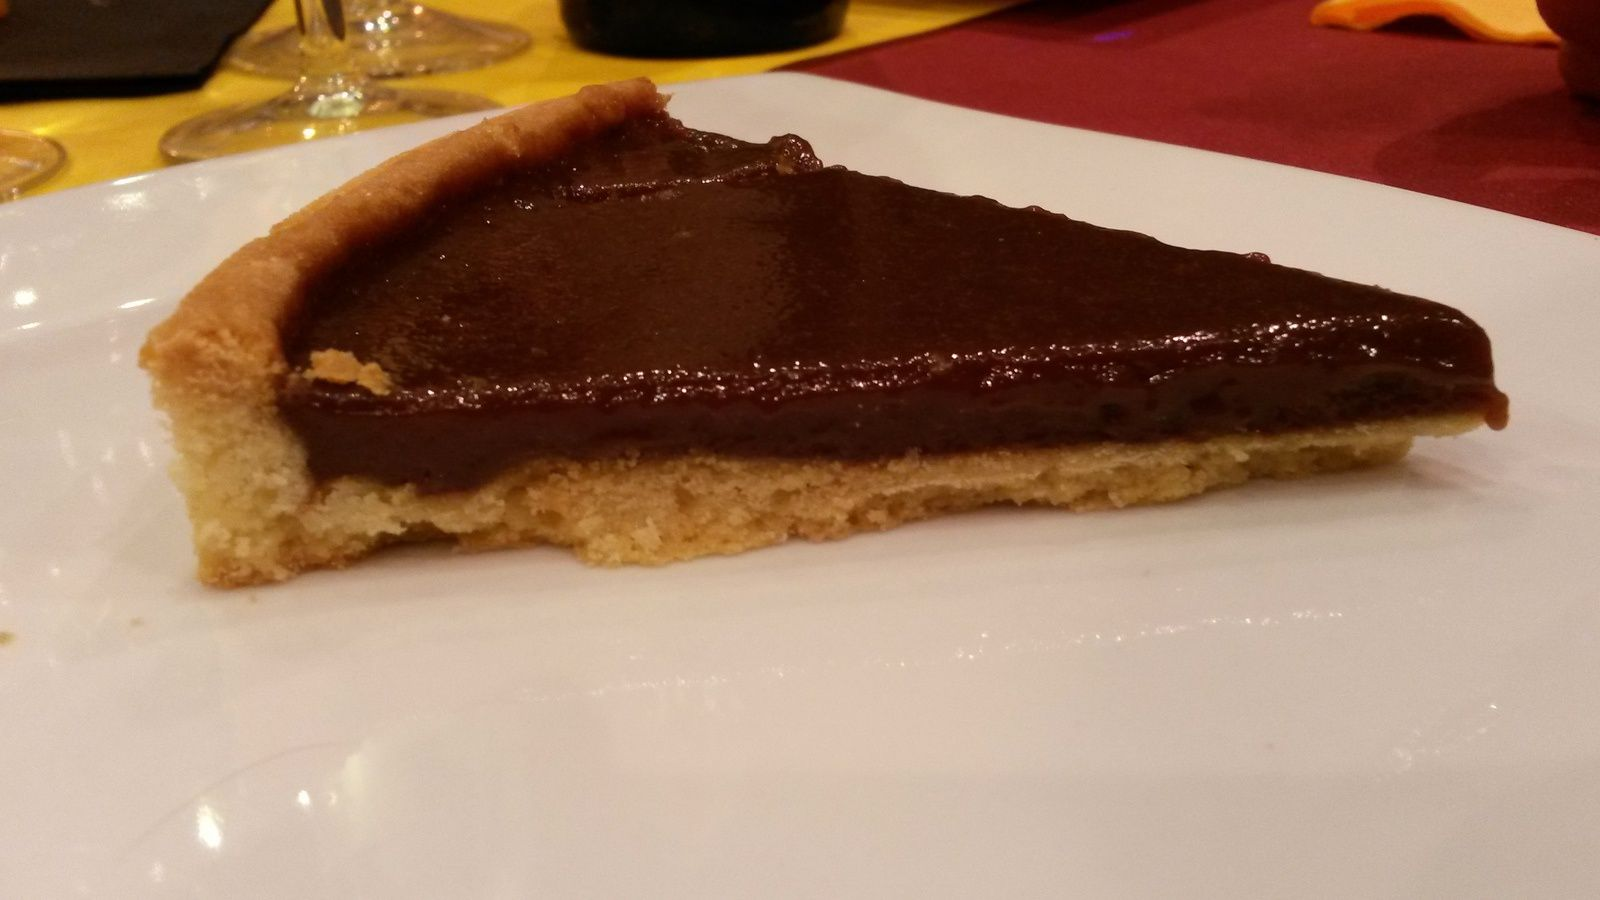 Tarte au chocolat au lait caramel - Angel's Kitchen